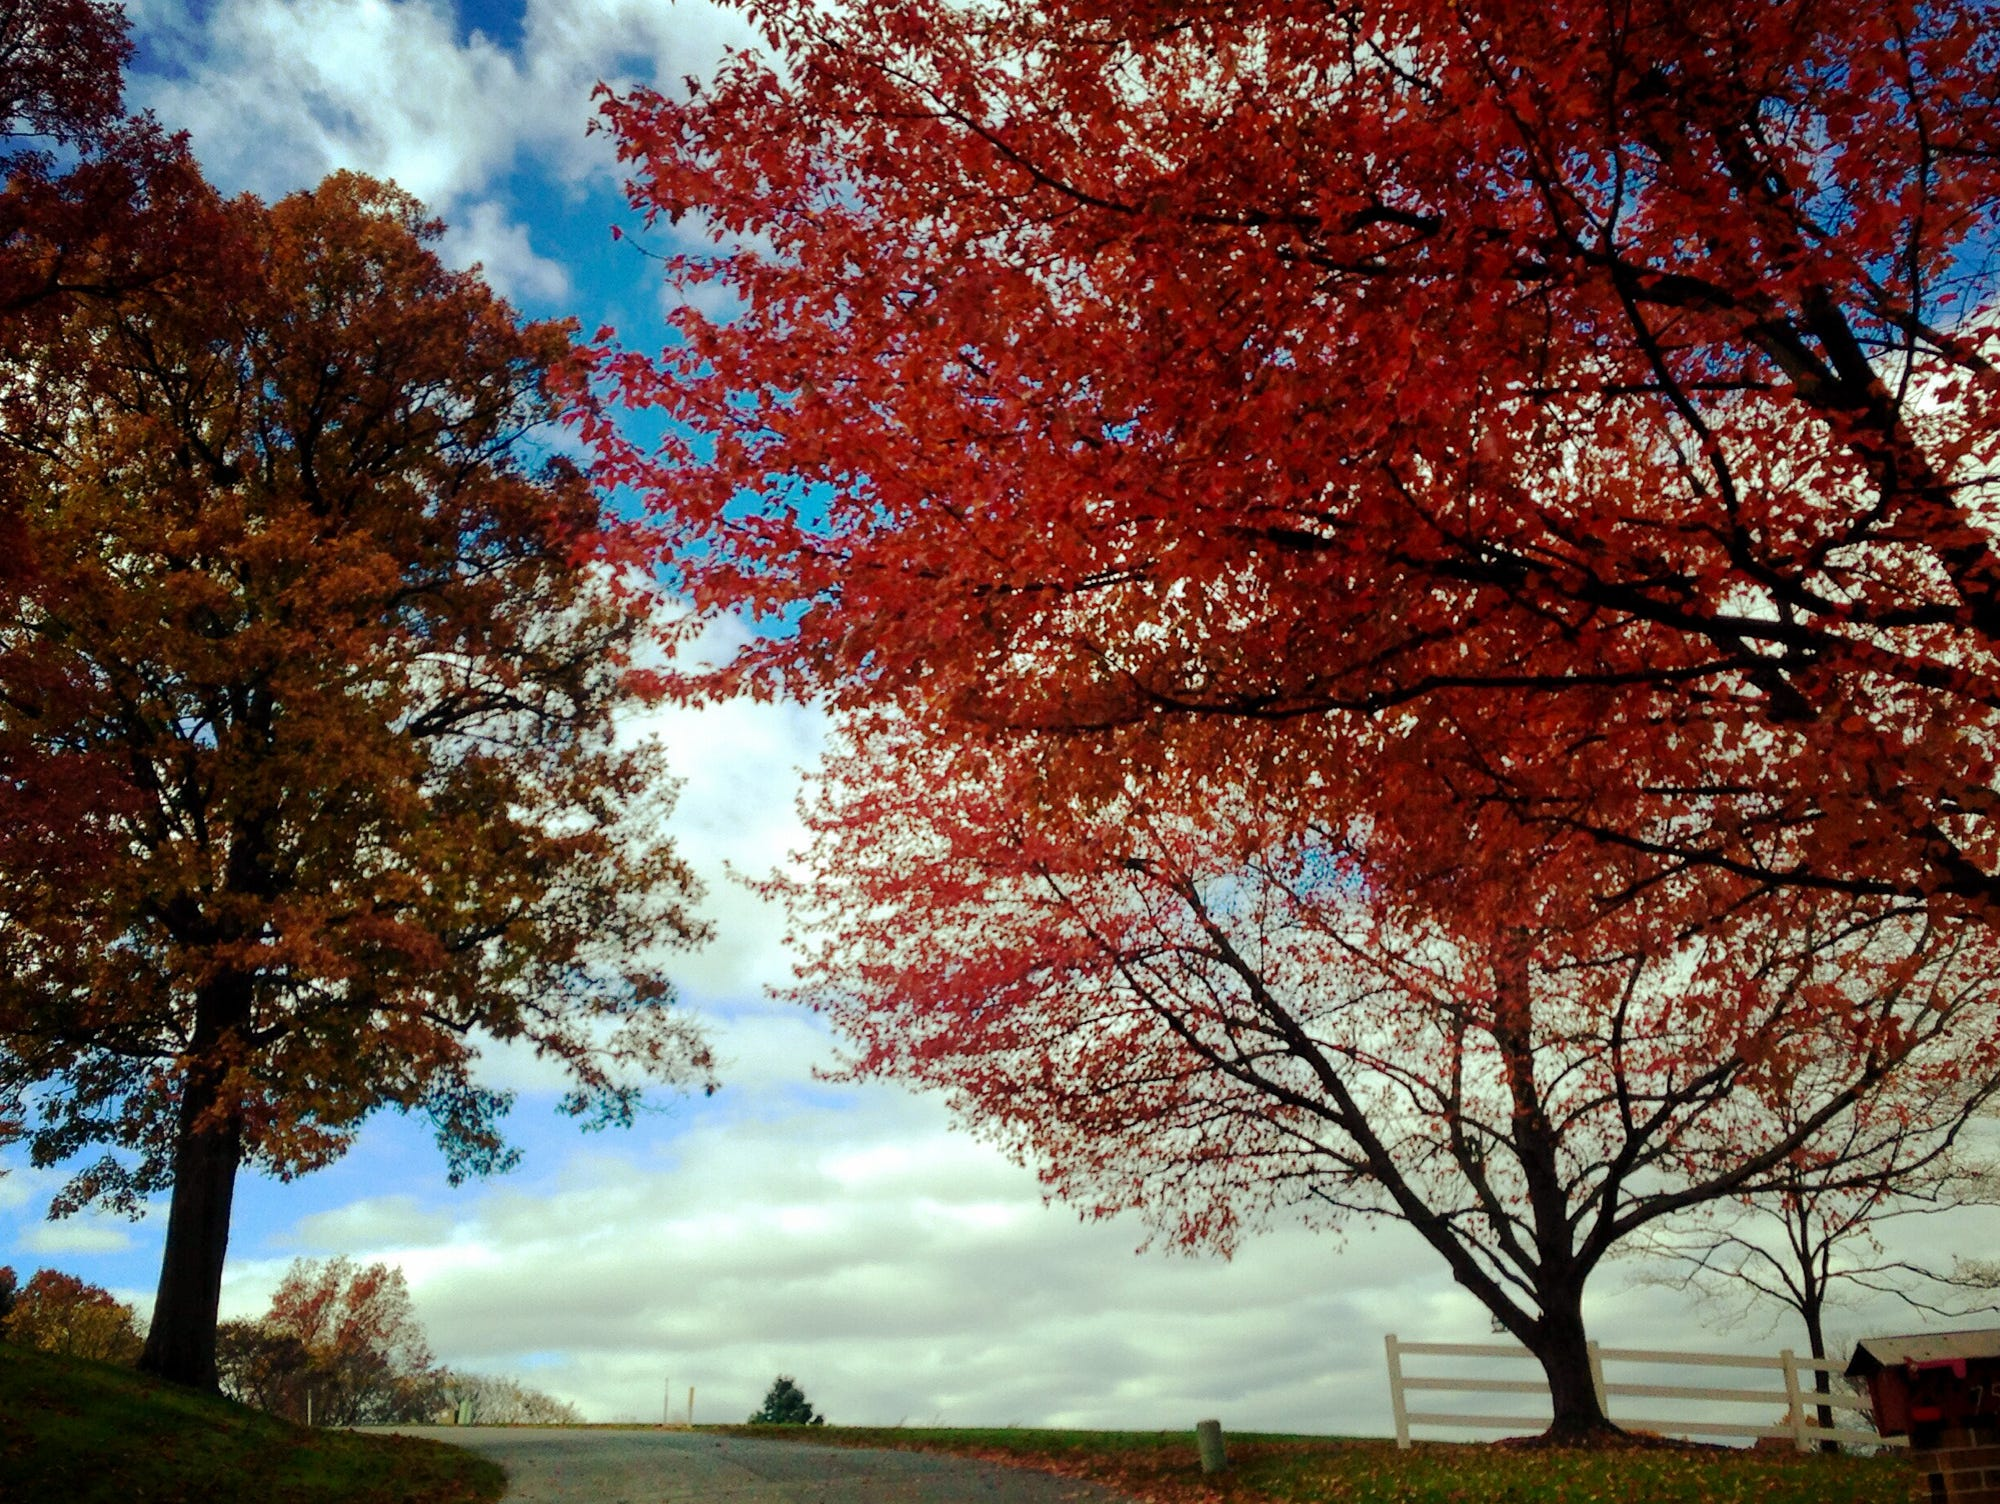 Check out these colorful fall scenes from around our region.